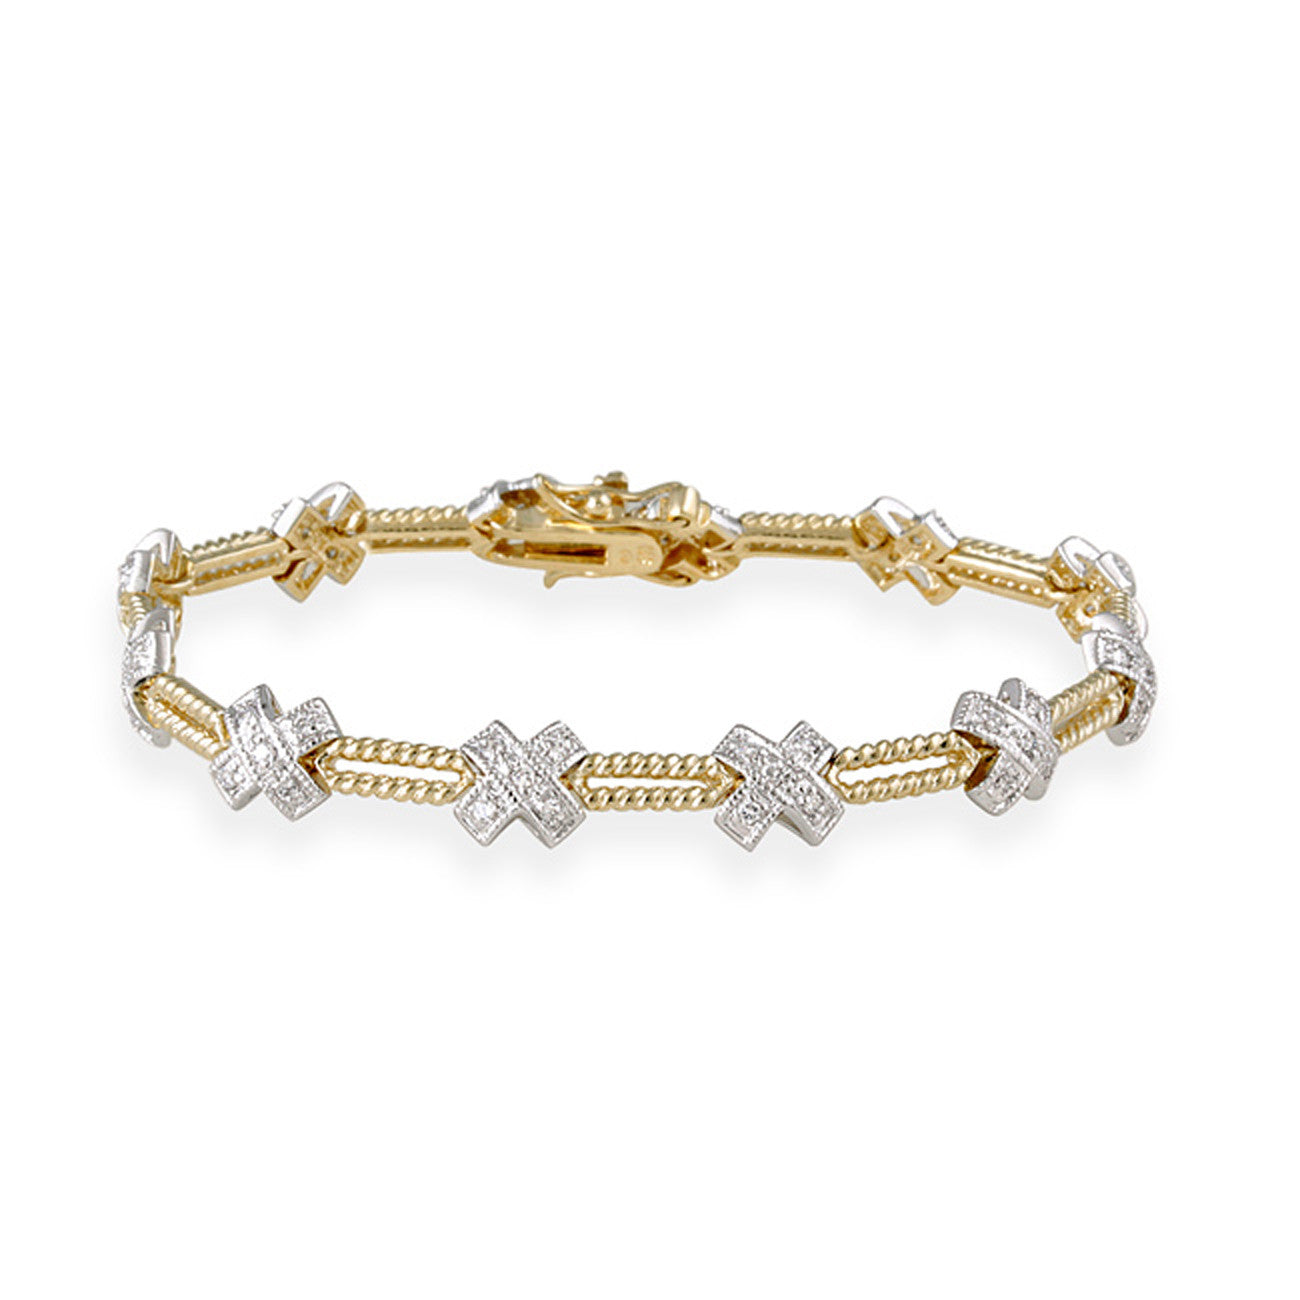 24k Gold Over Silver Two Tone Cubic Zirconia Bracelet